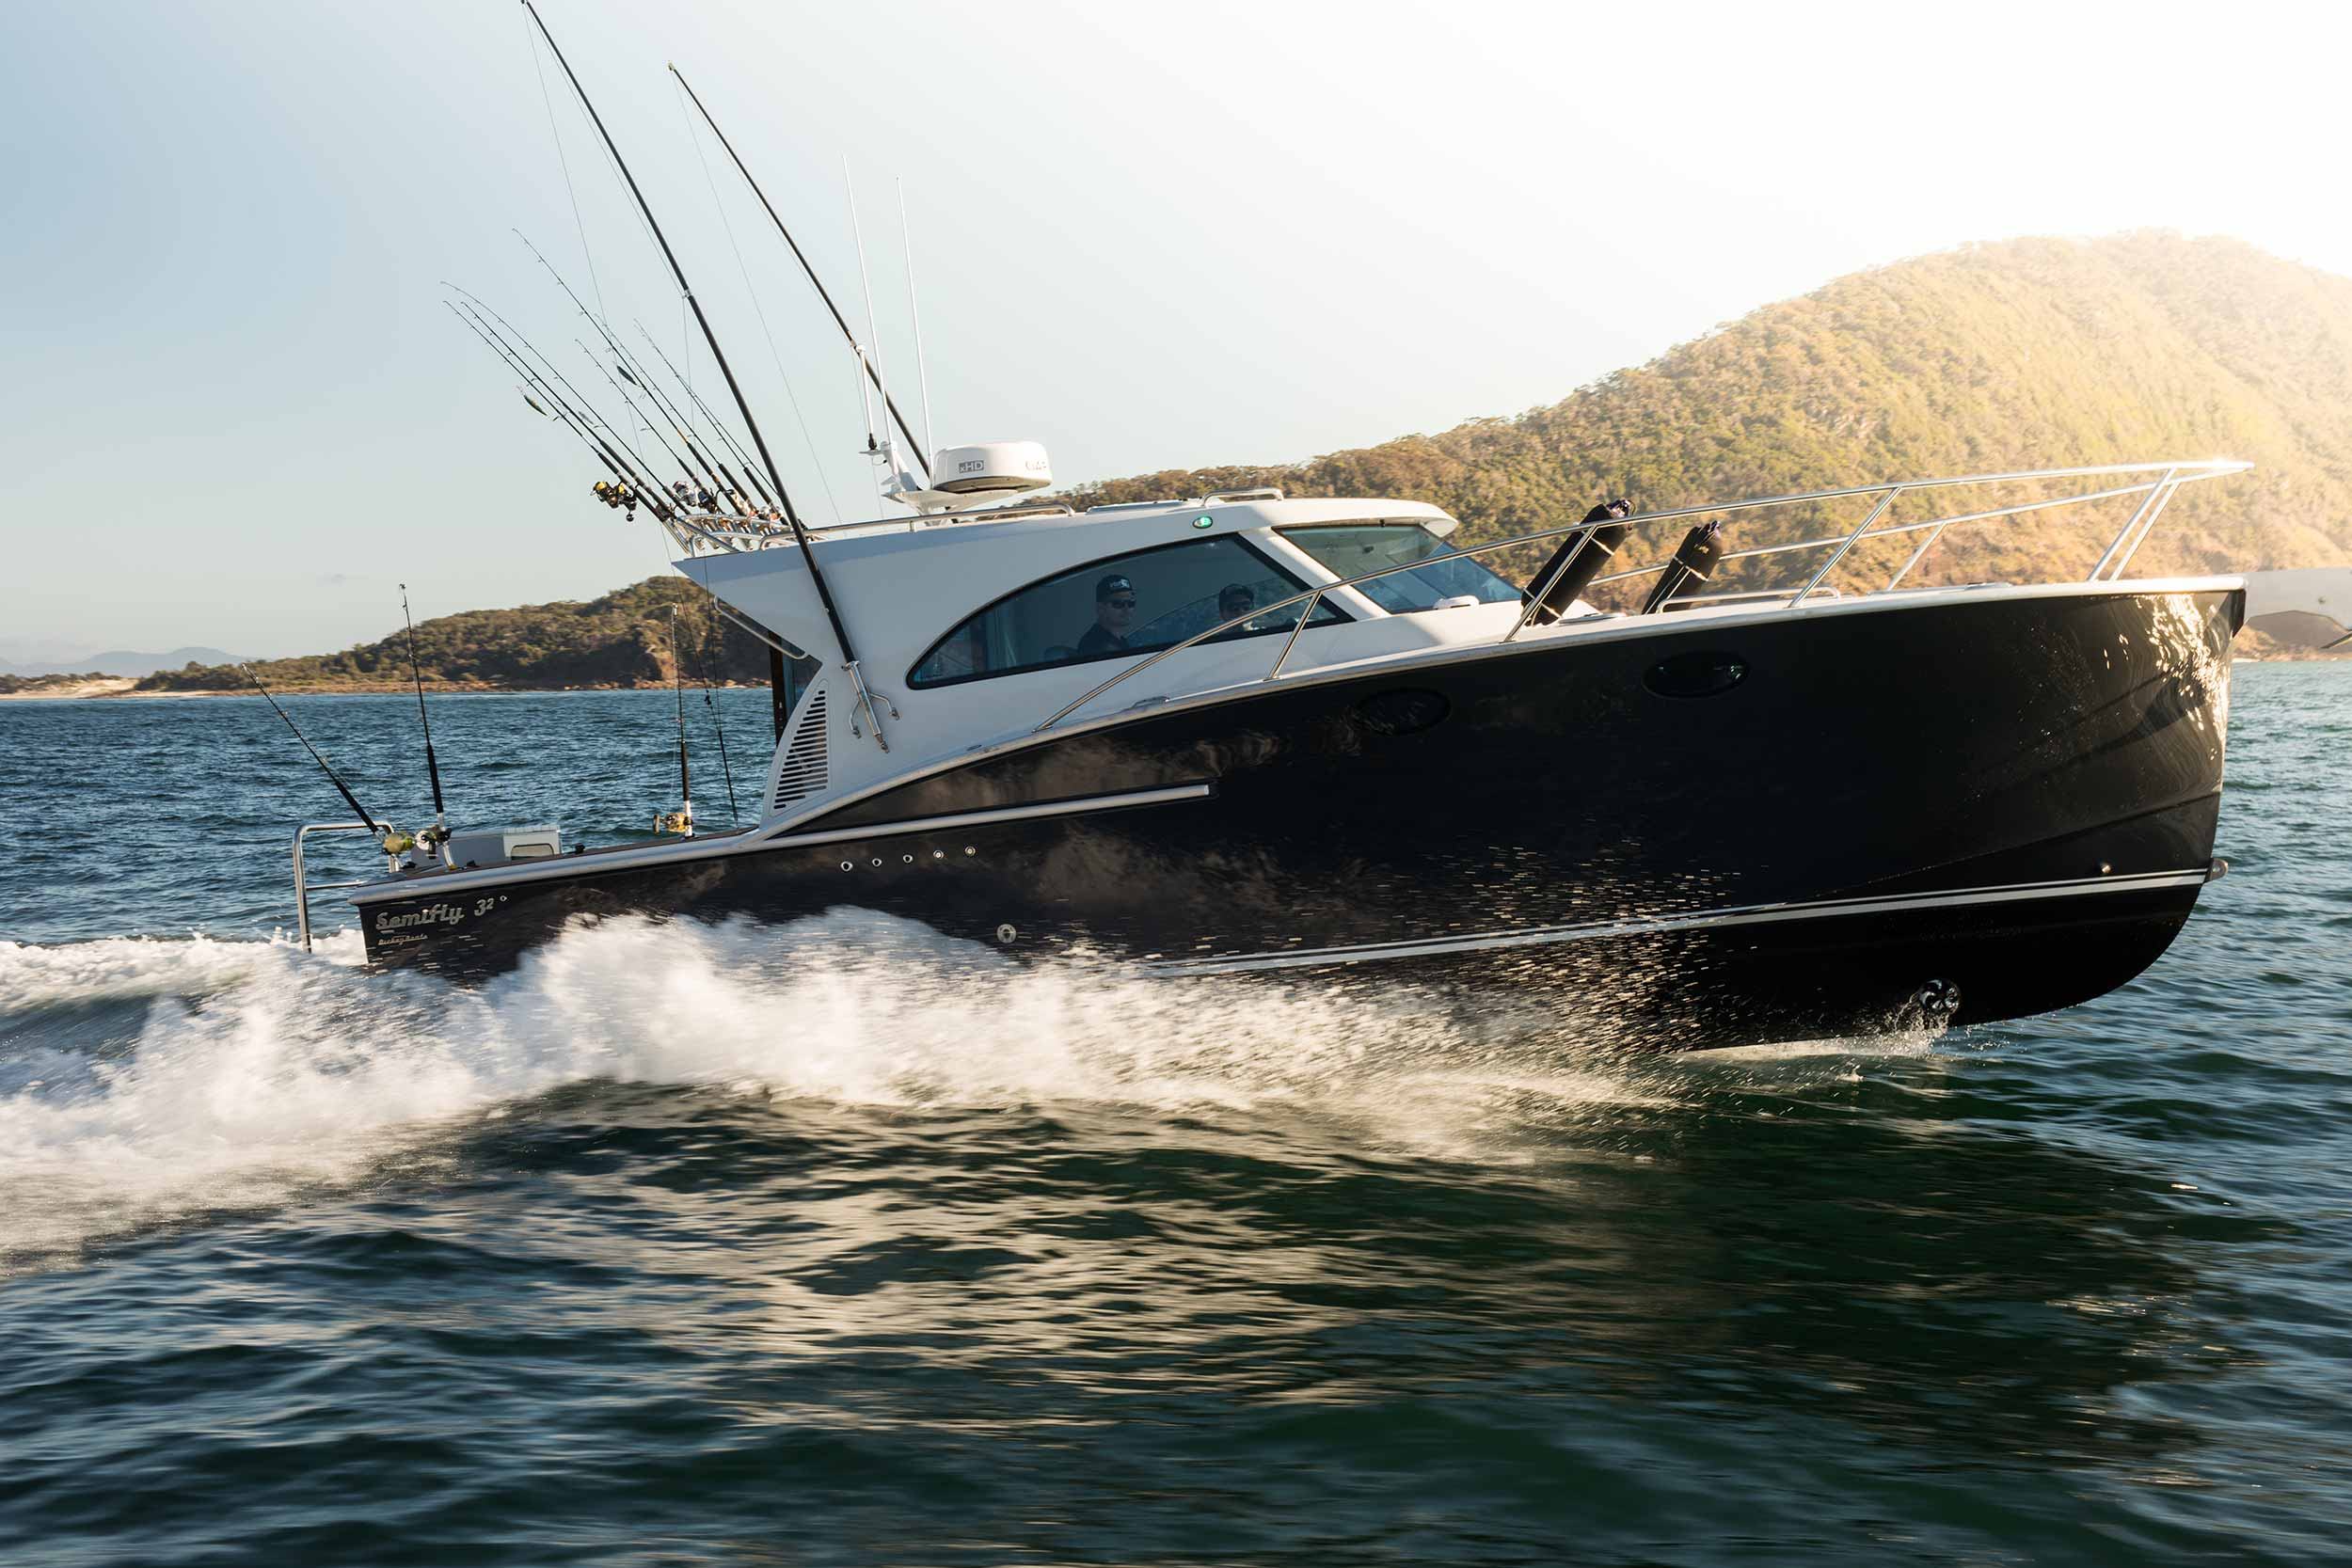 Dickey Boats Semifly 32 Port Stephens headland